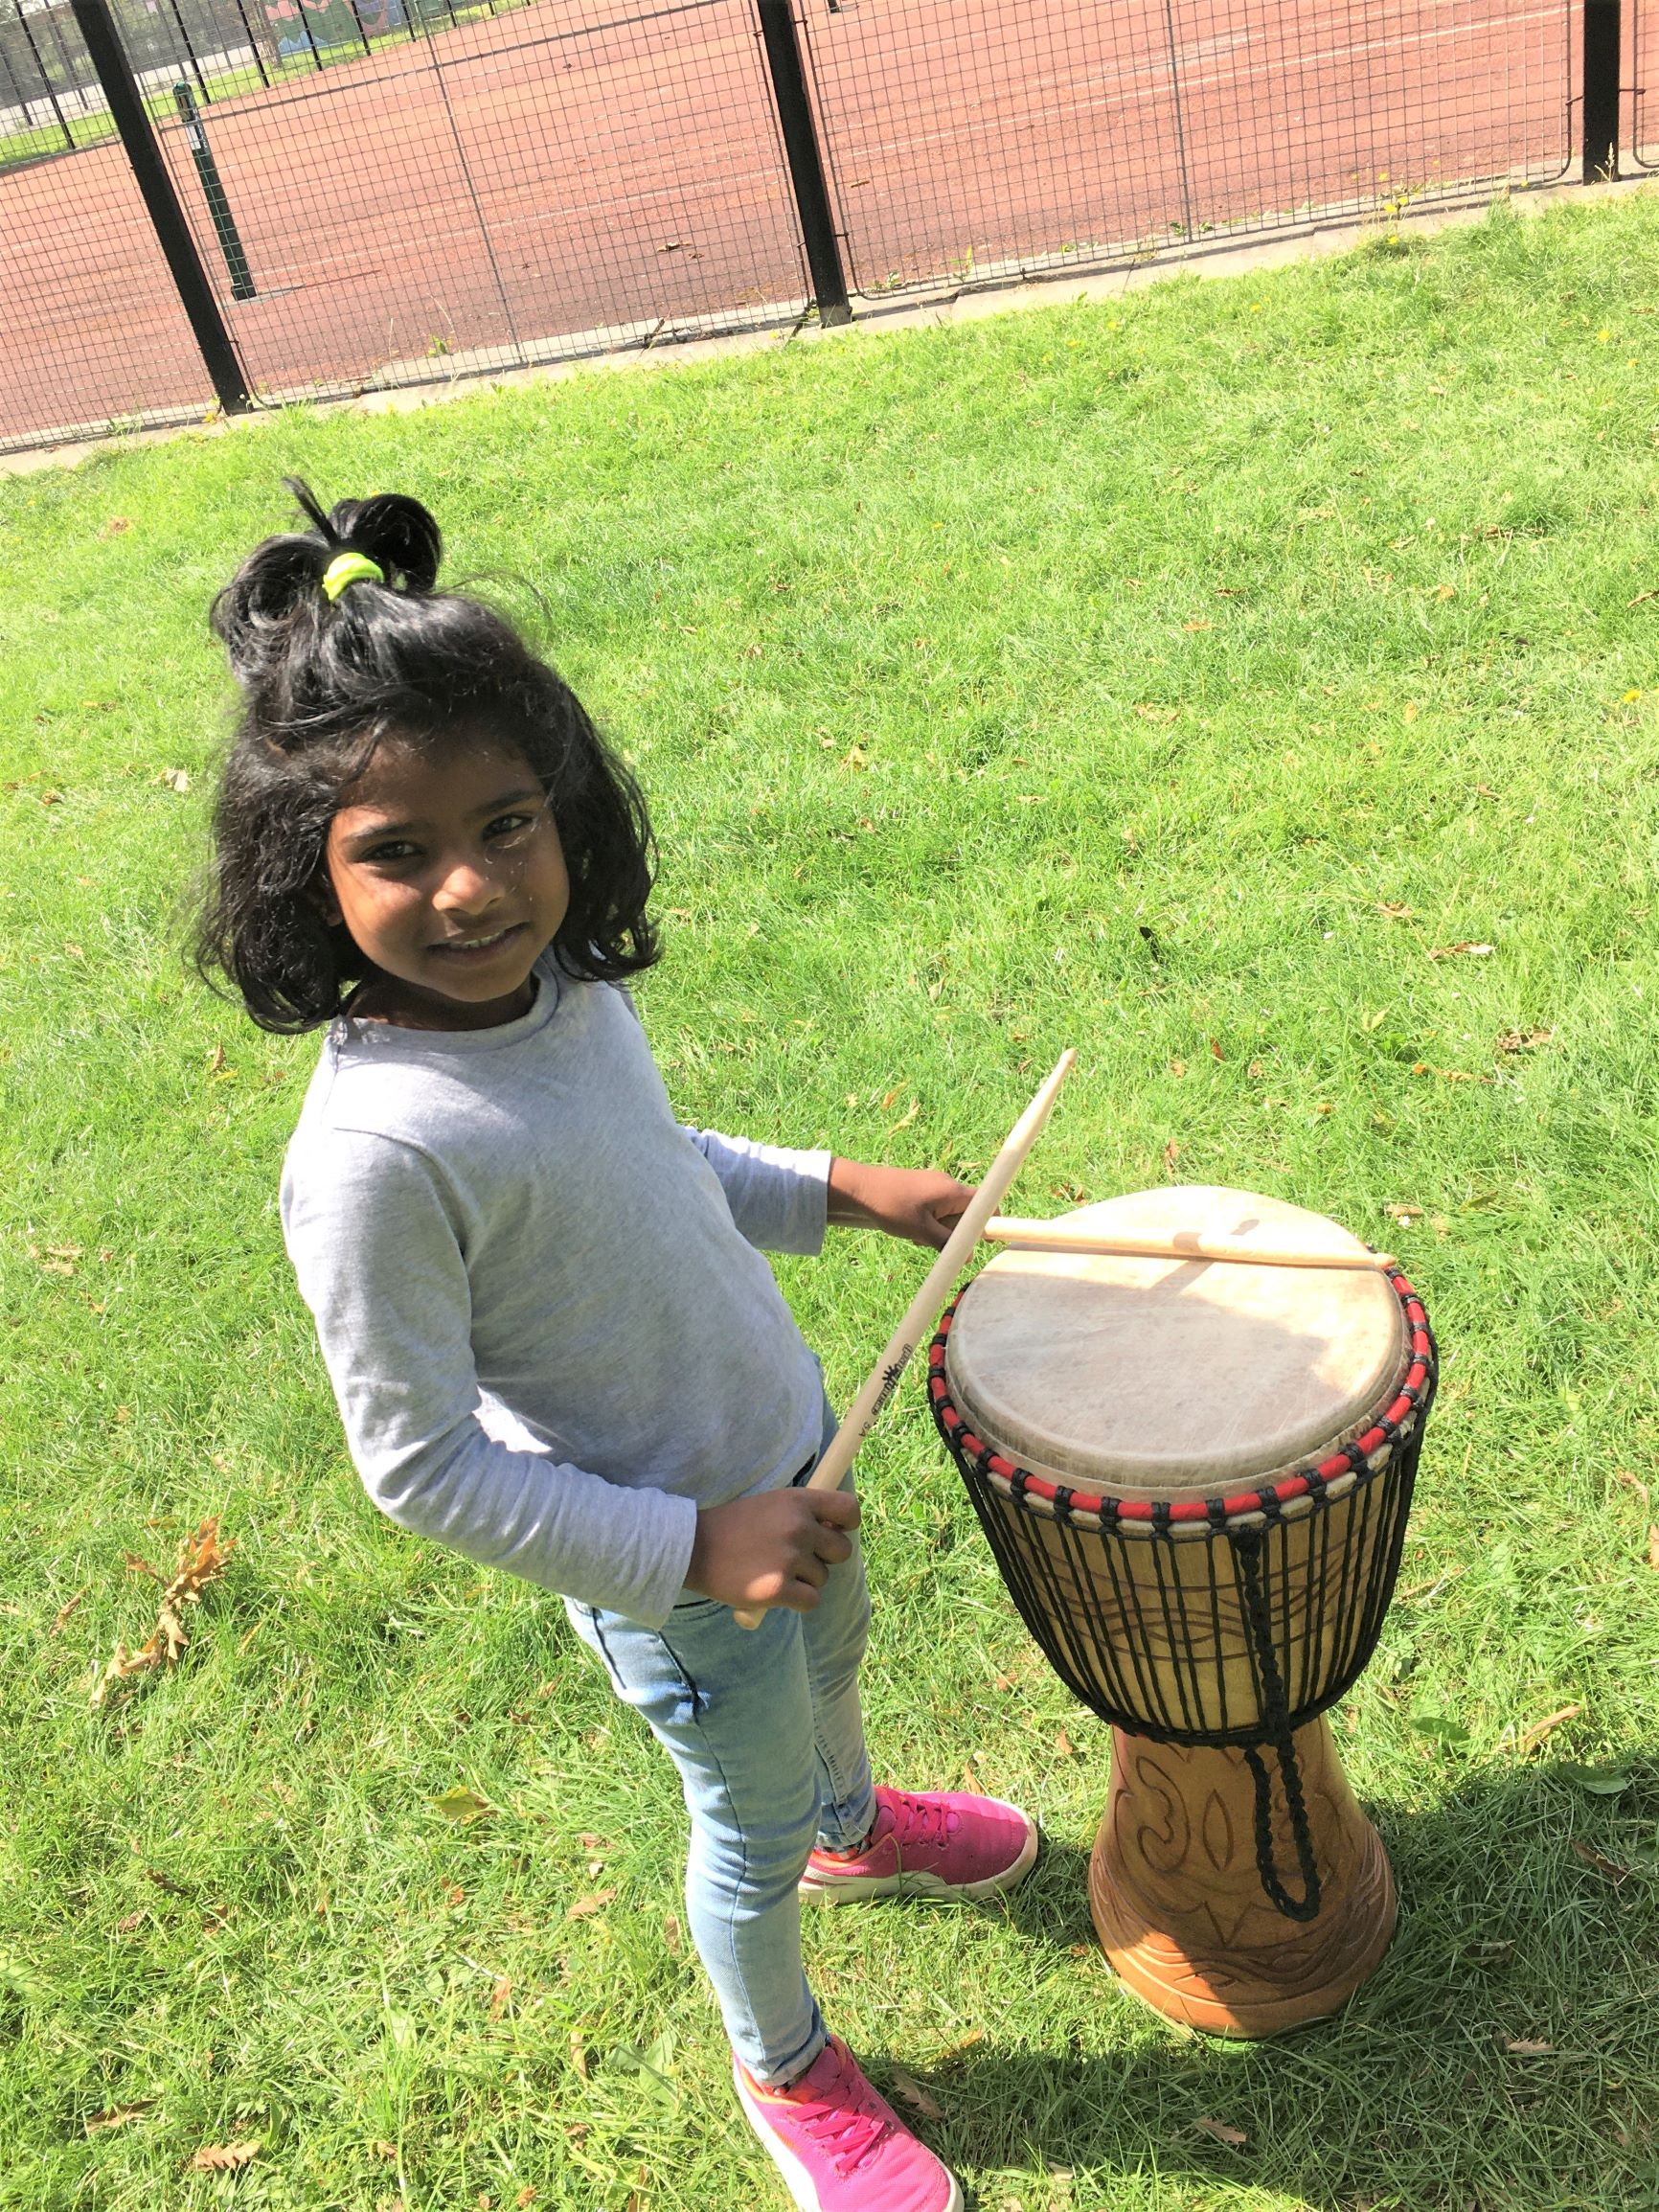 A young girl smiles at the camera and drums on a djembe instrument in the grass